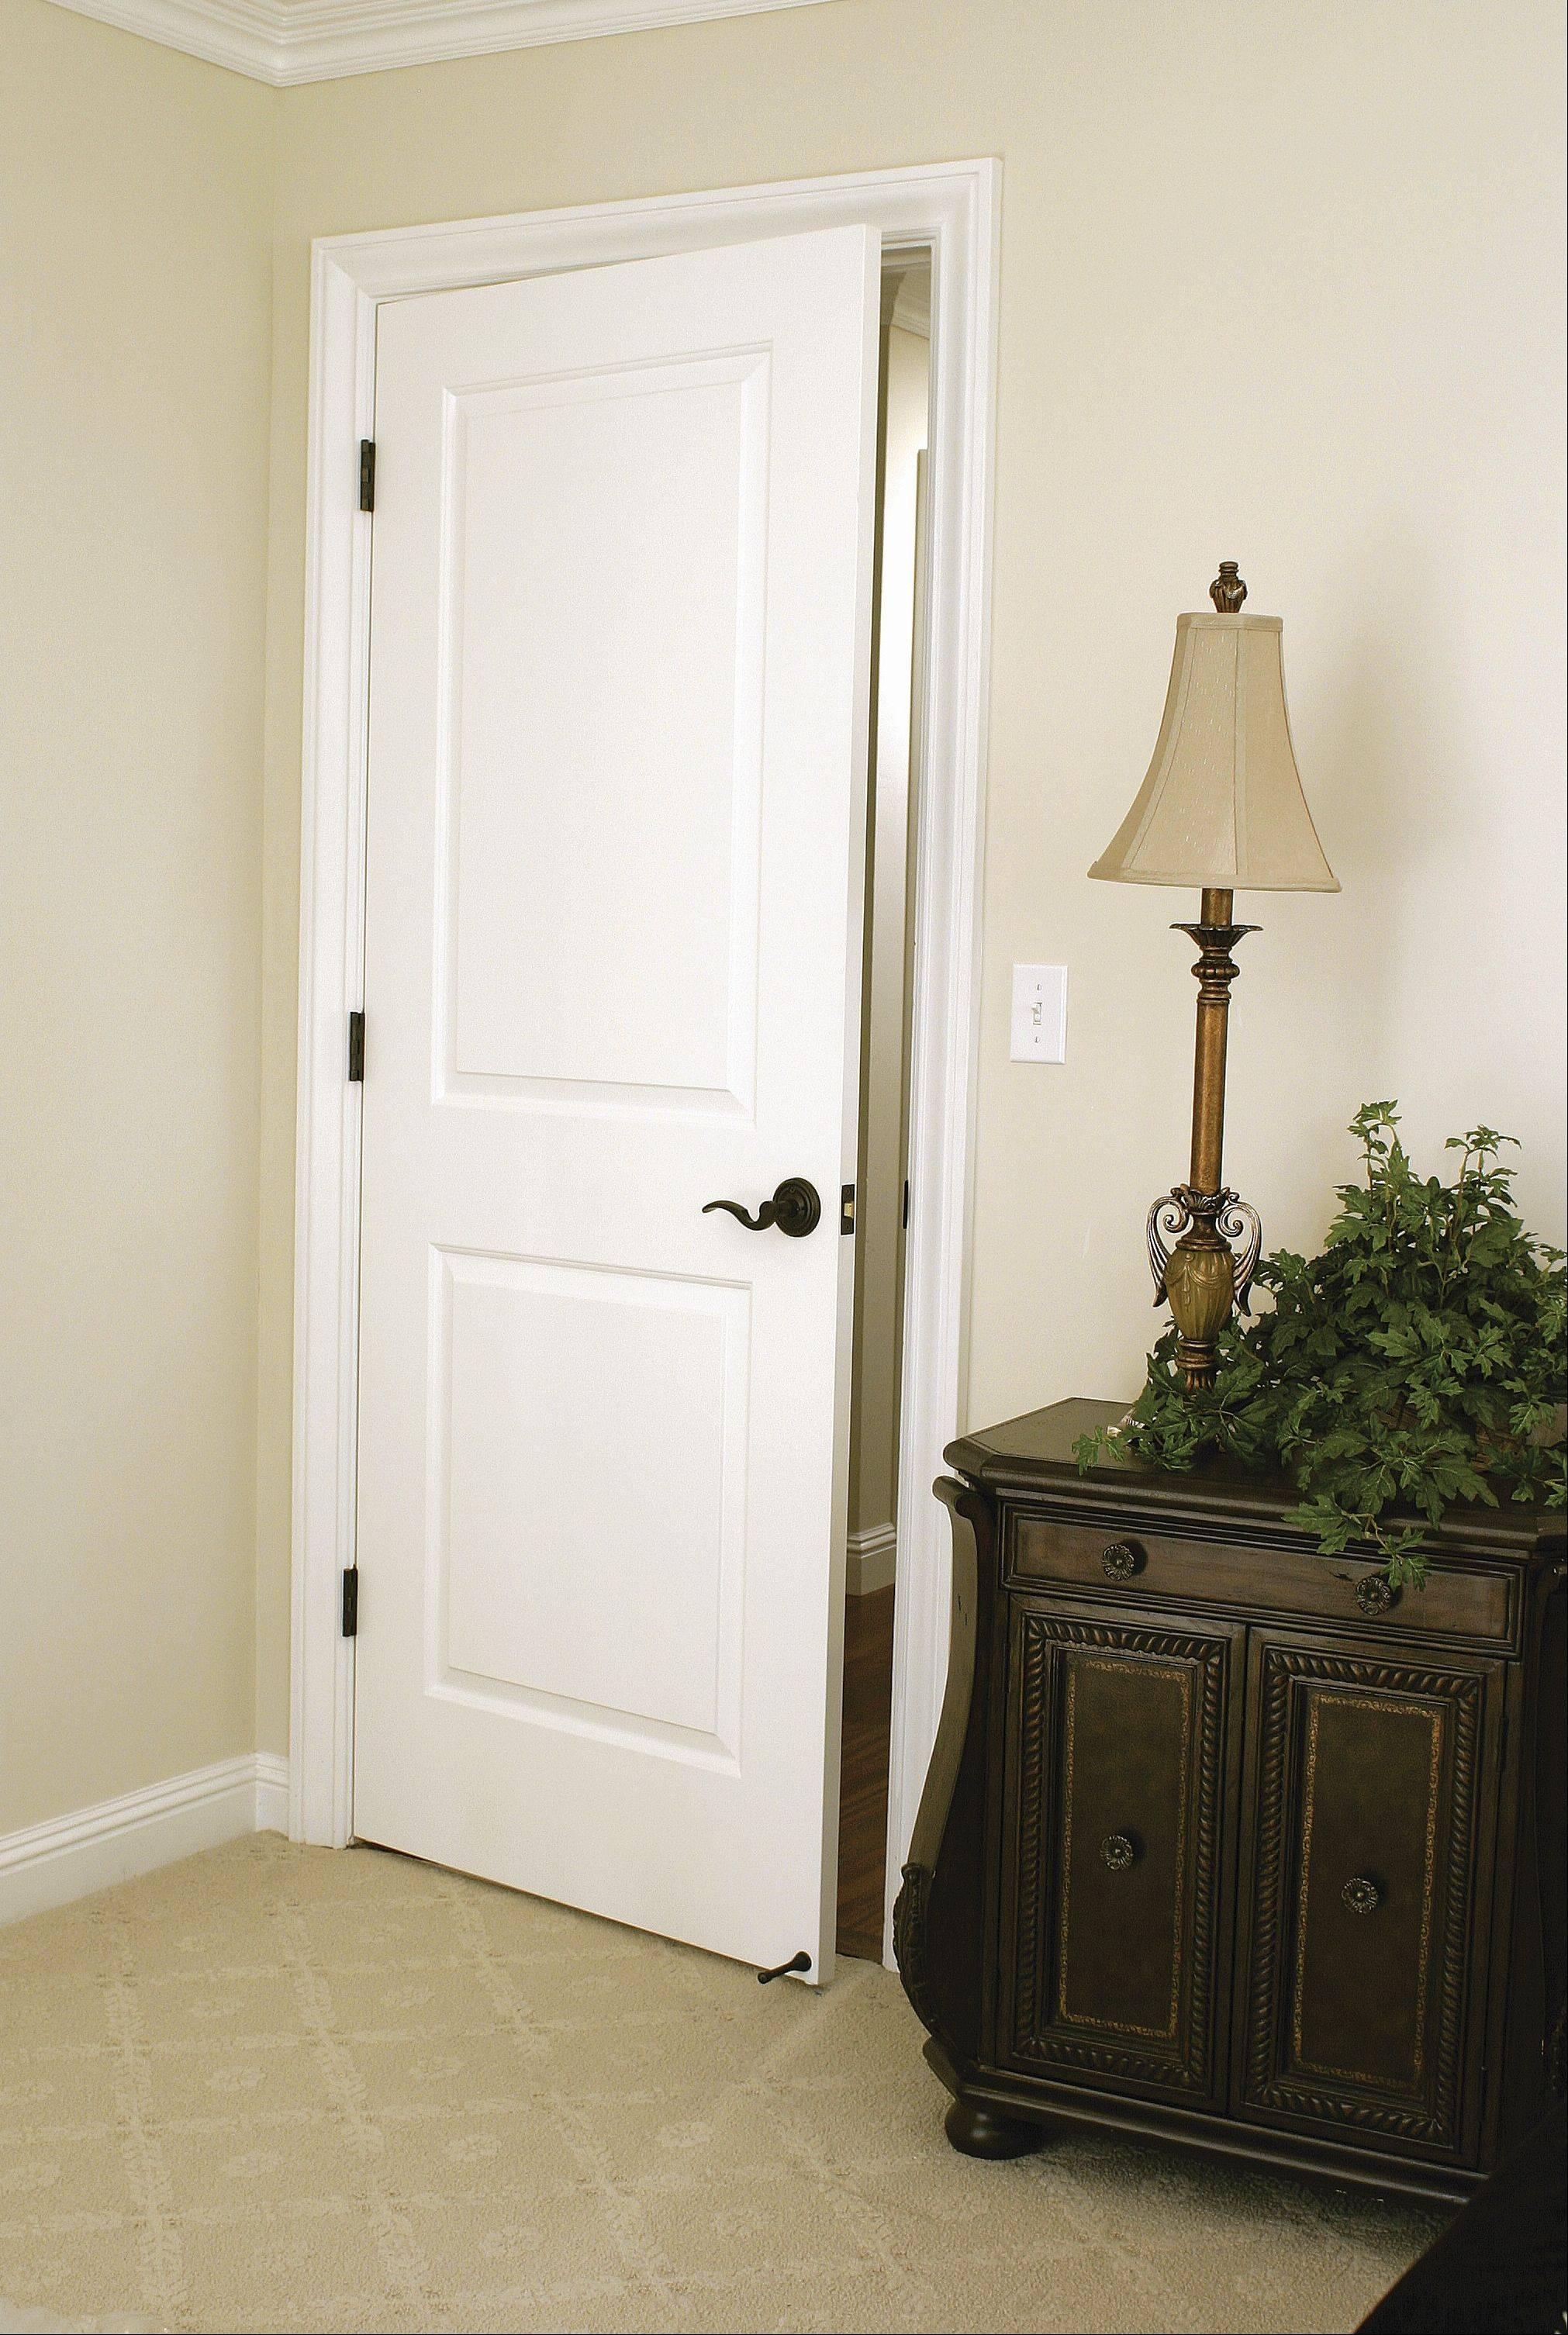 A two-panel door with decorative hardware can give a room an updated look.